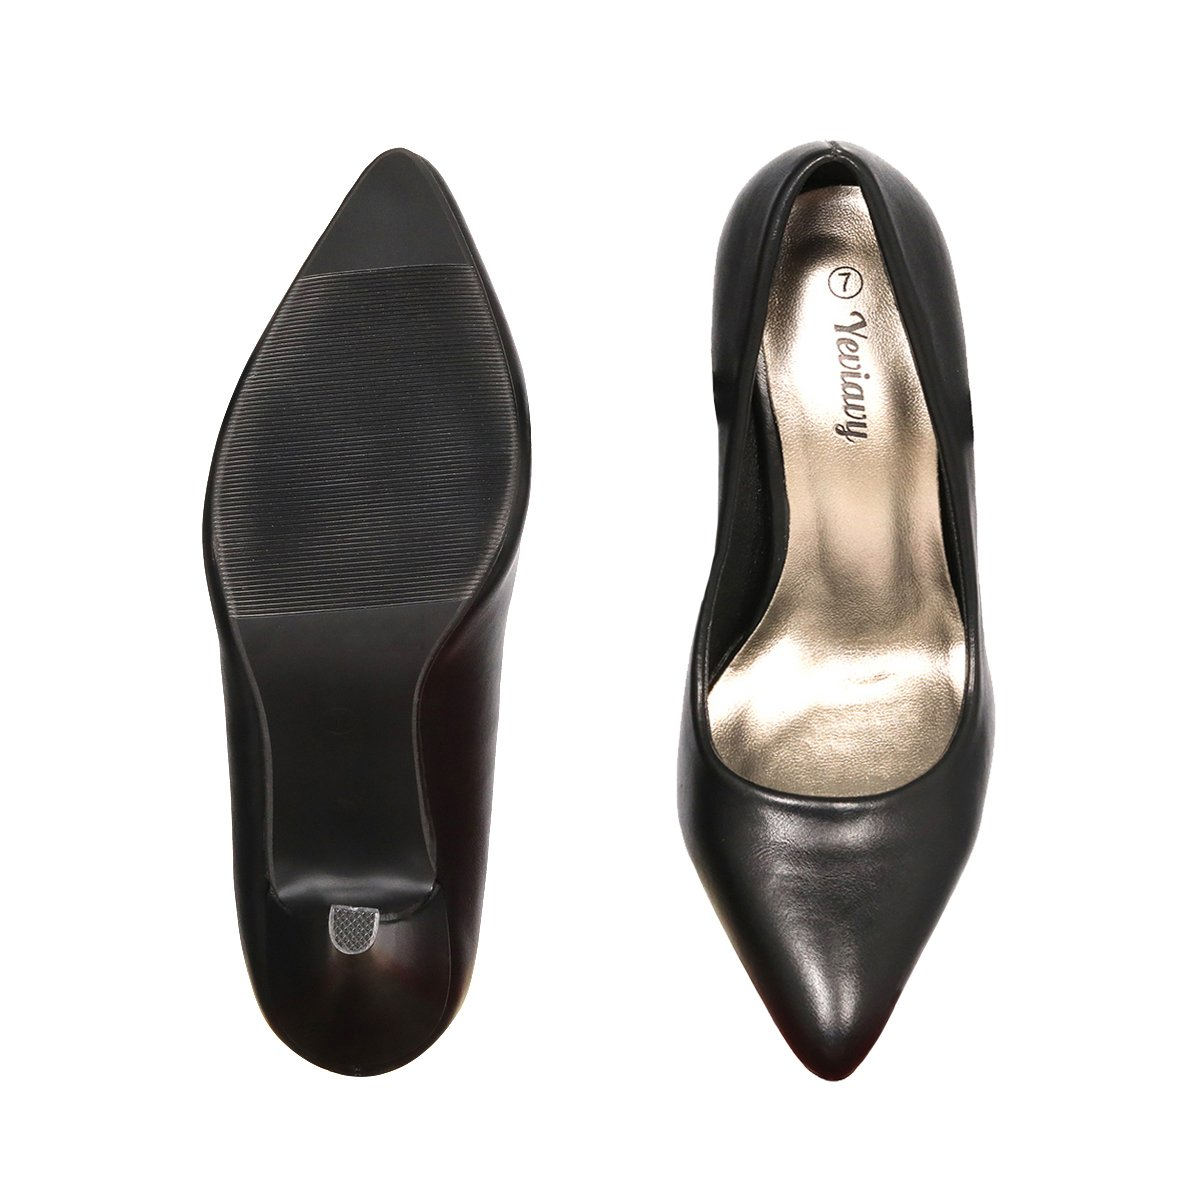 Yeviavy Women's Pumps Shoes High Heel Pointed Toe Dress Fashion Shoes Black/Pewter PU 8.5 by Yeviavy (Image #2)